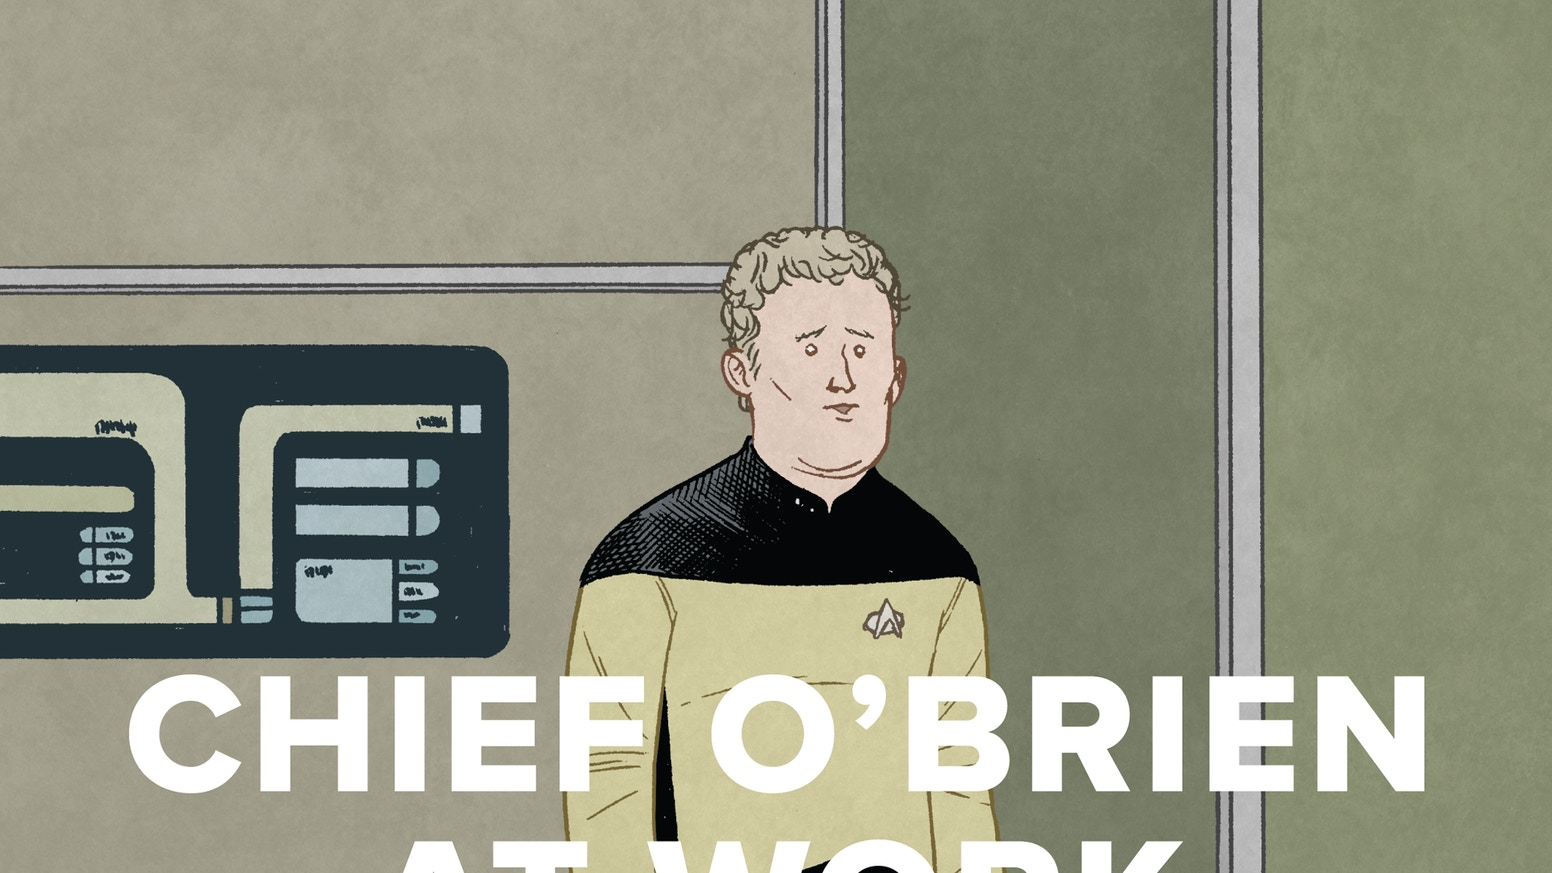 The beloved and painful Chief O'Brien at Work webcomic is now a big book! Perfect for fans of space travel, dead-end jobs, and ennui.